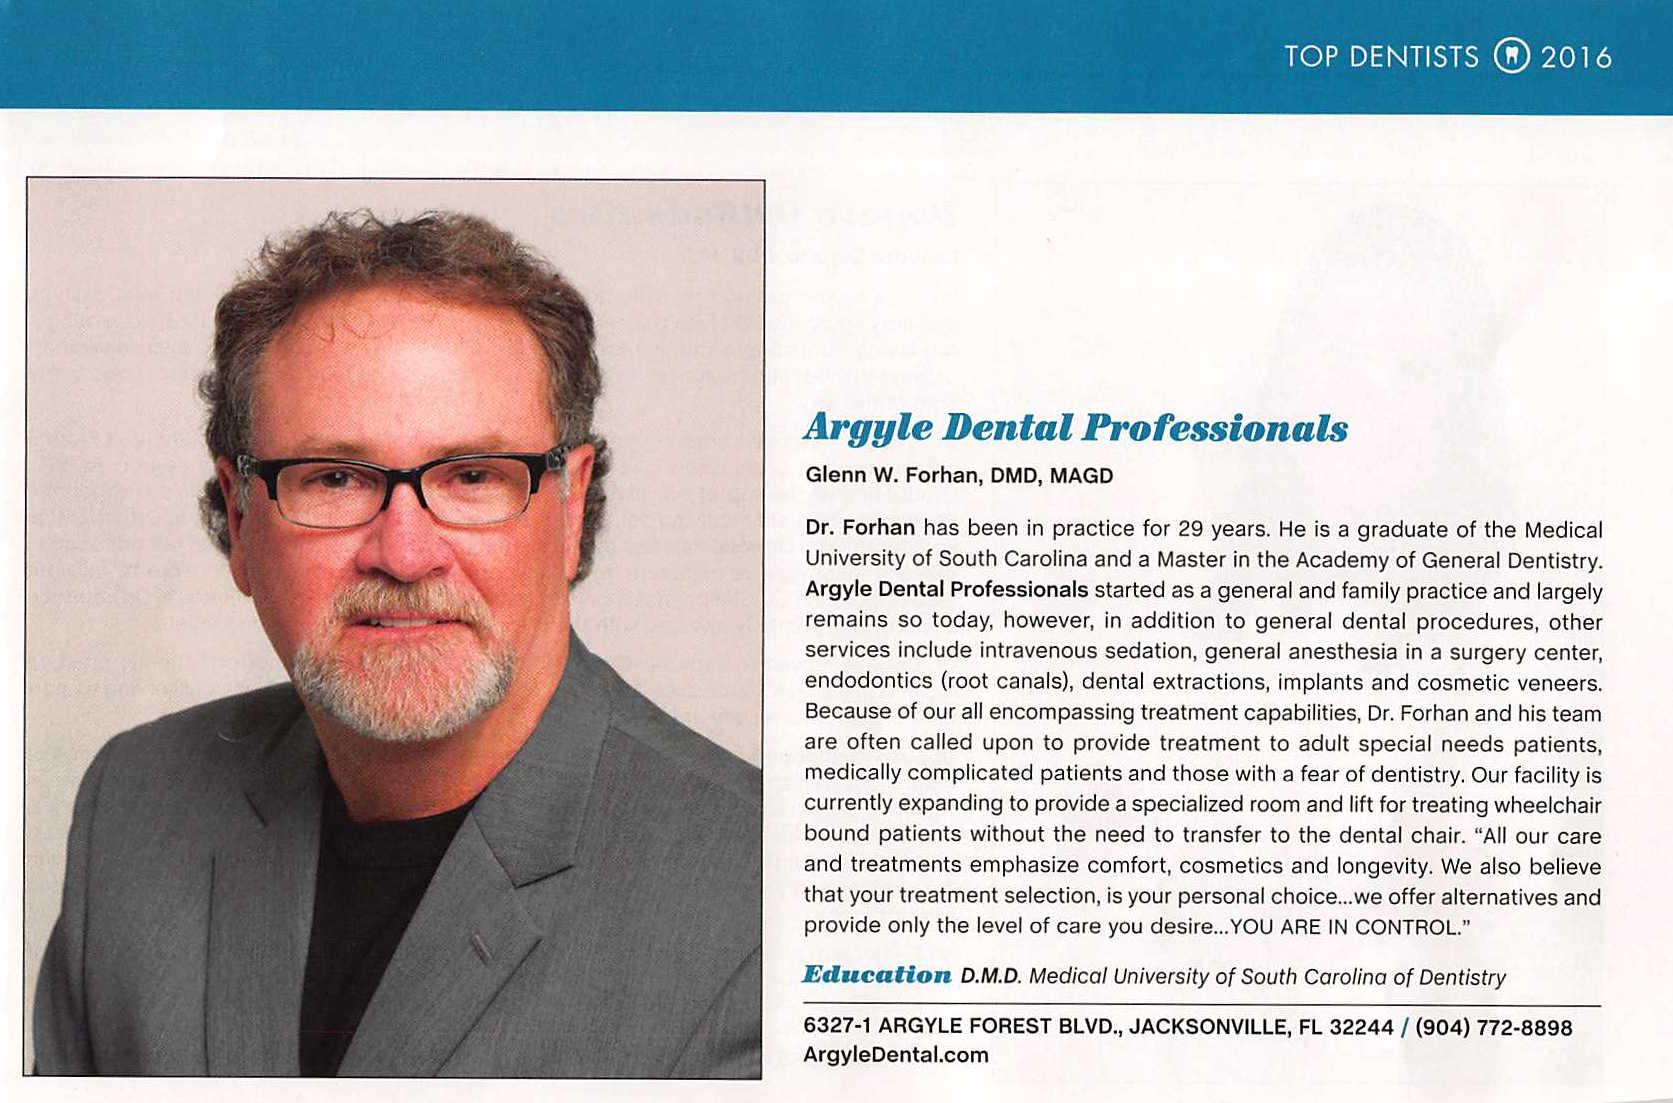 image of Argyle Dental Professionals